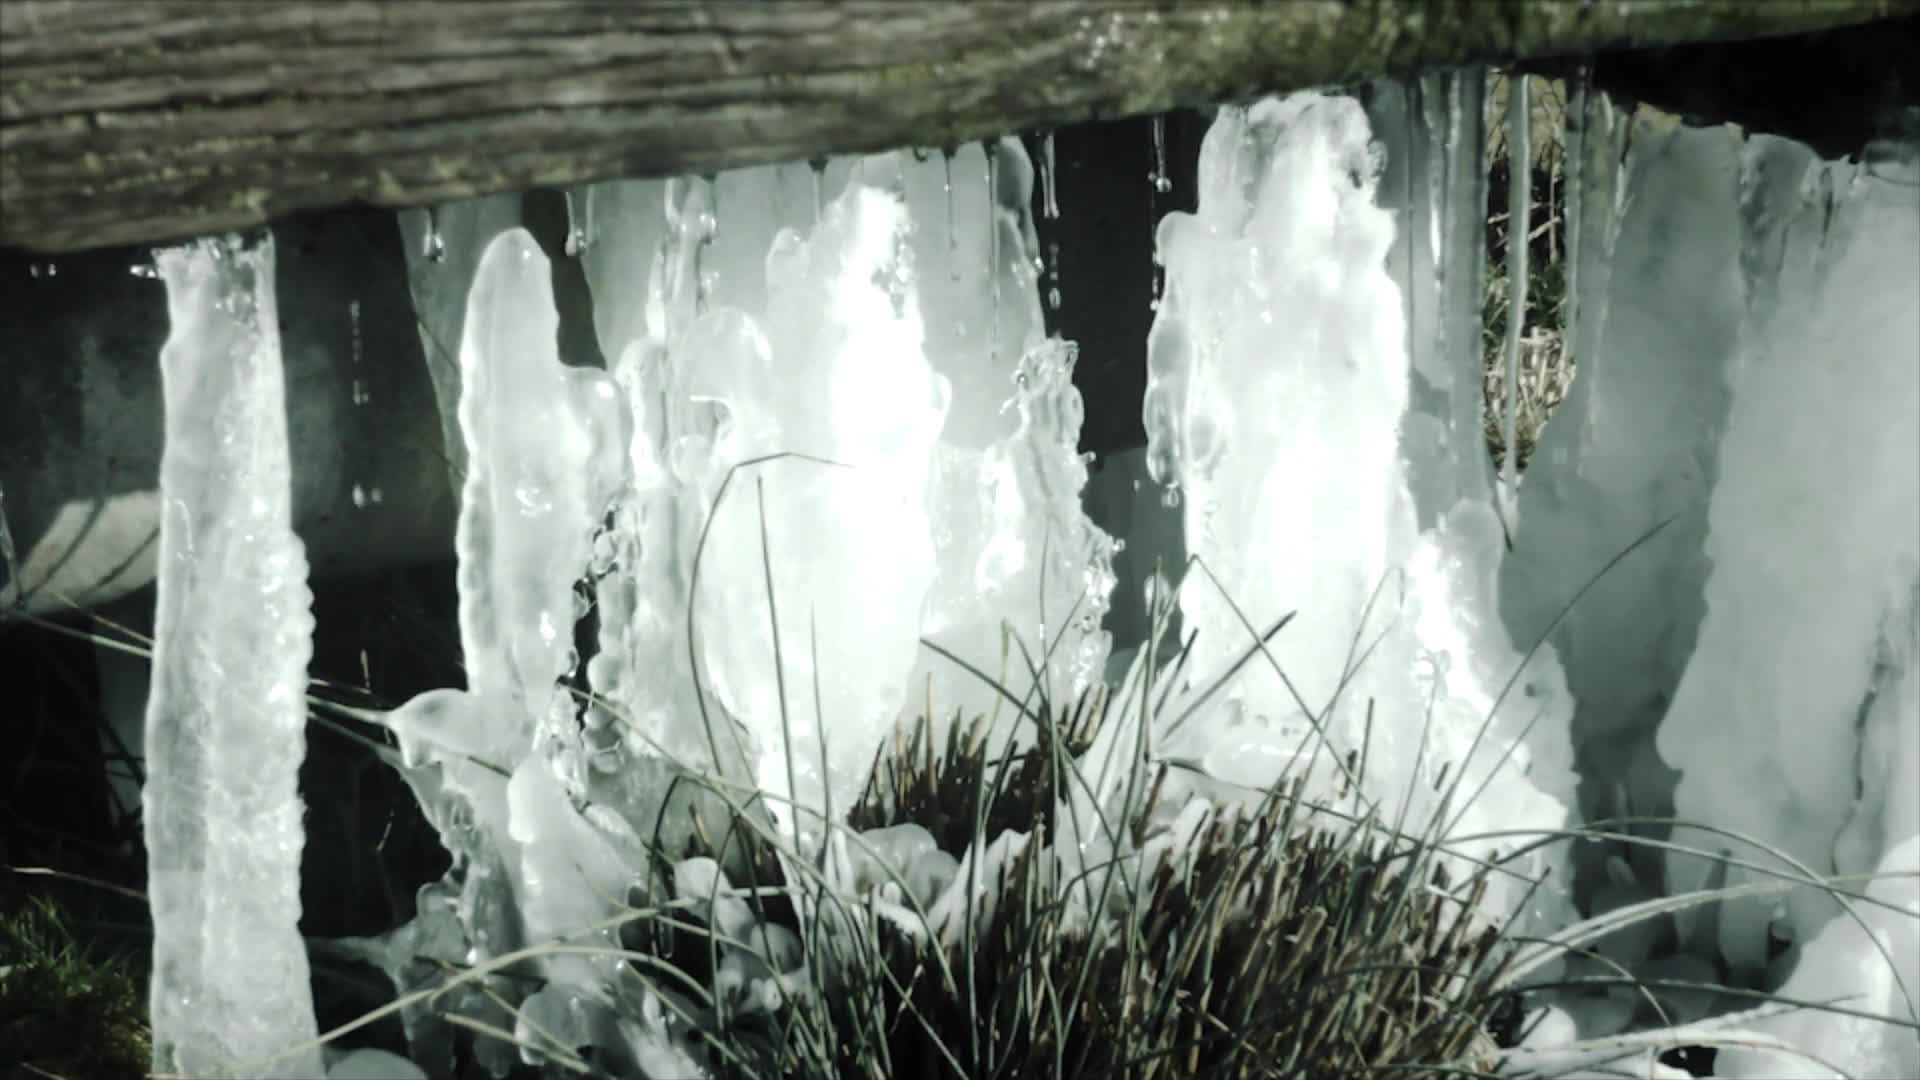 Video of melting ice